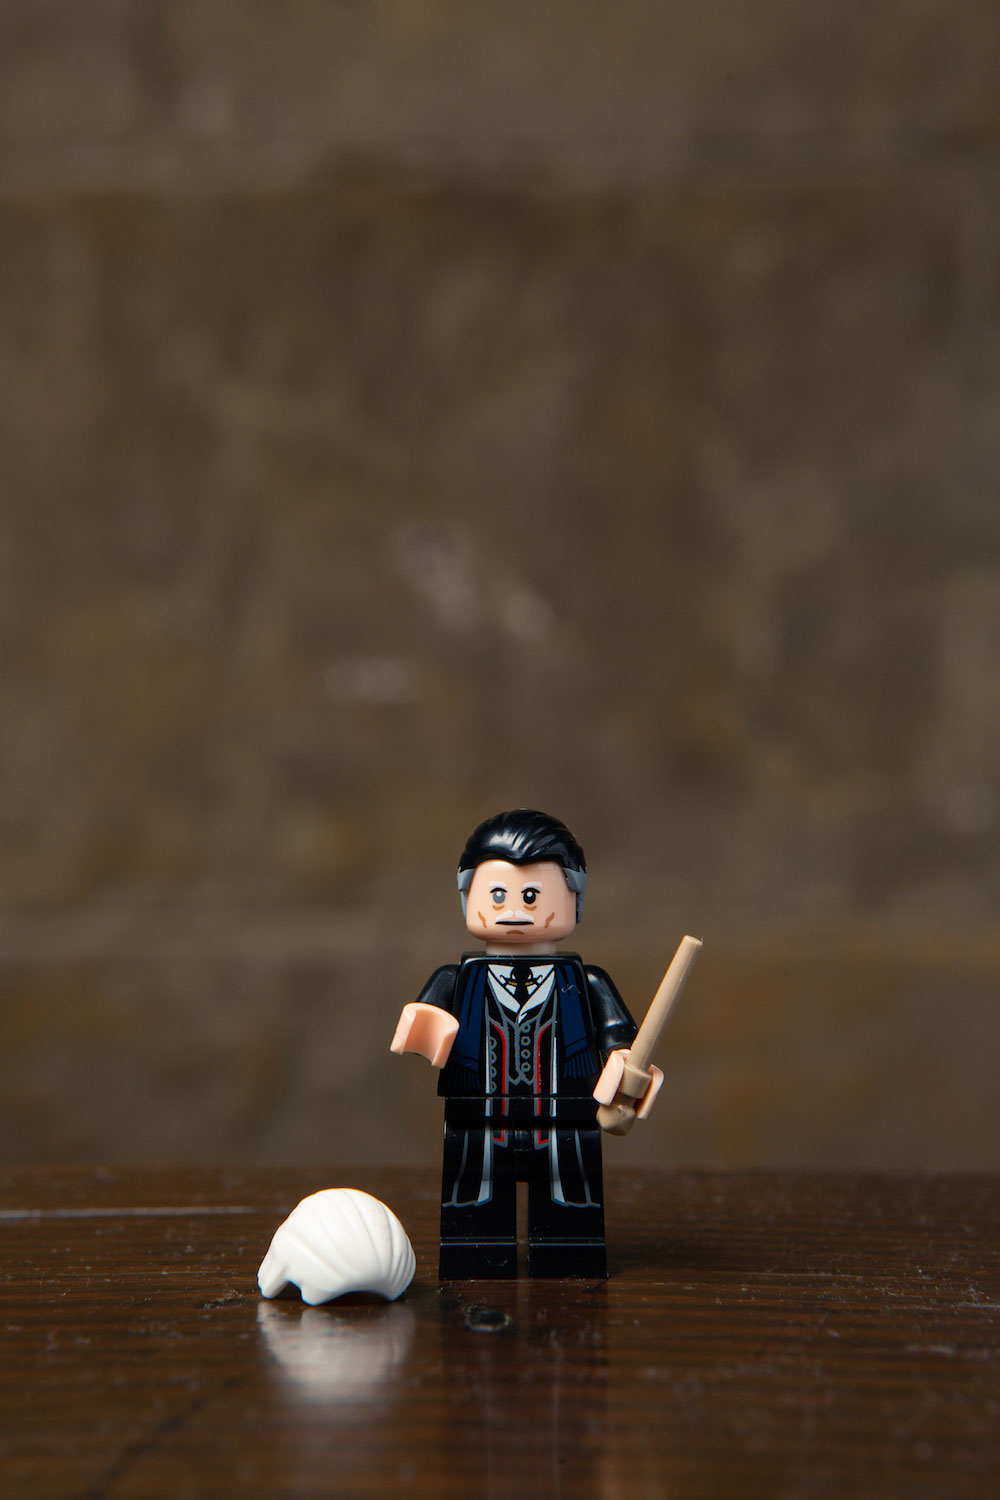 Graves or Grindelwald? LEGO gives you the option of transforming this minifigure.